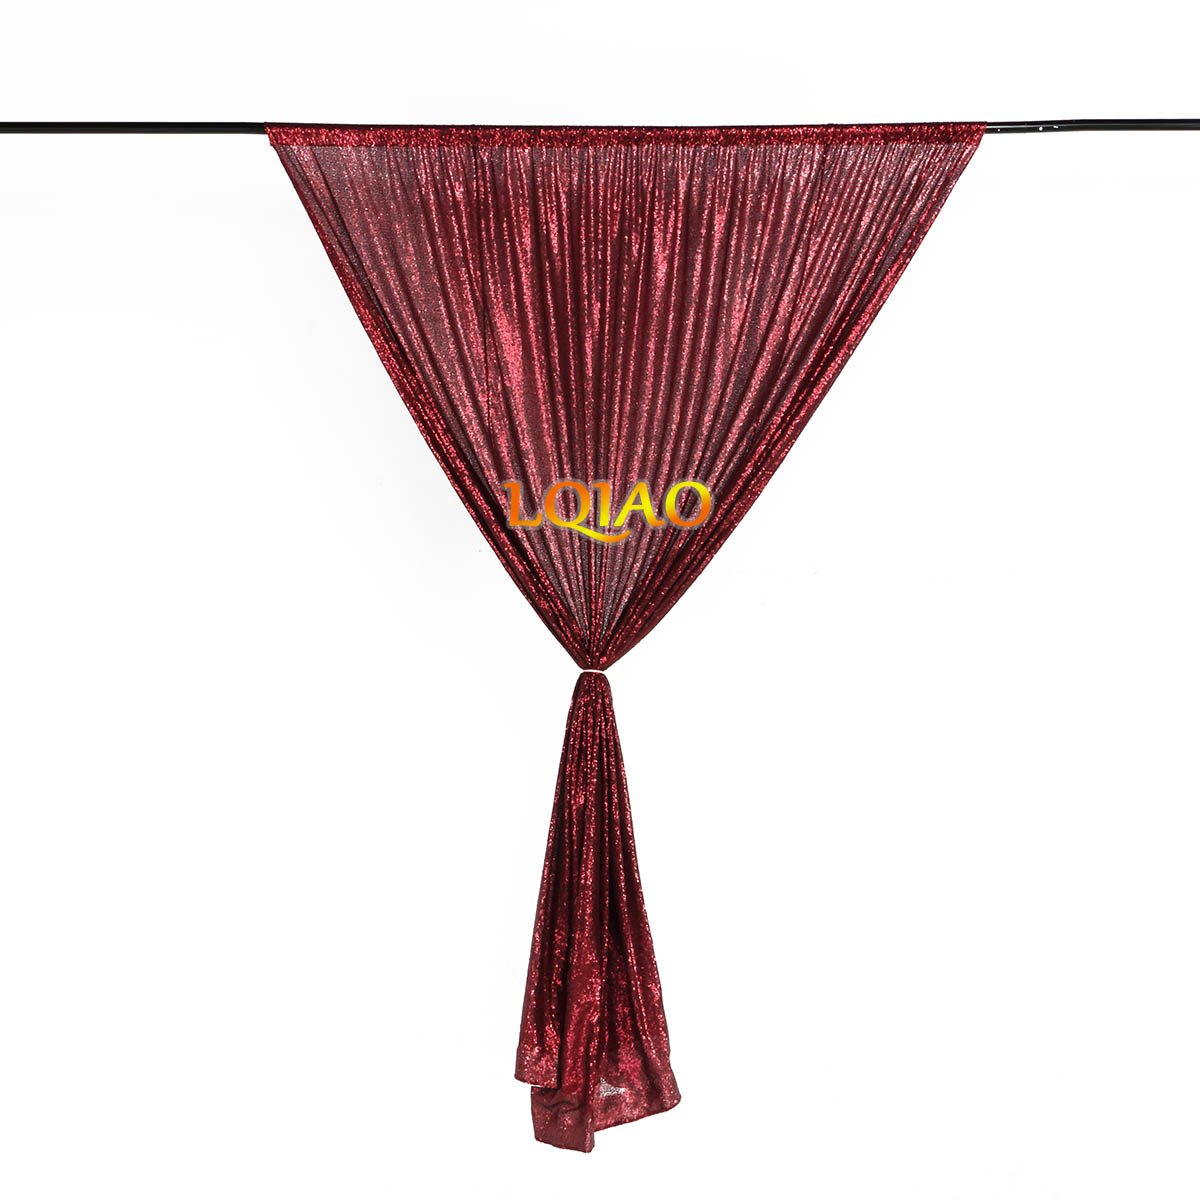 LQIAO Embroidered Sequin Fabric Backdrop Curtain 4FTx8FT Burgundy Modern Window Drapes Sequin Curtain for living room/photo booth backdrop